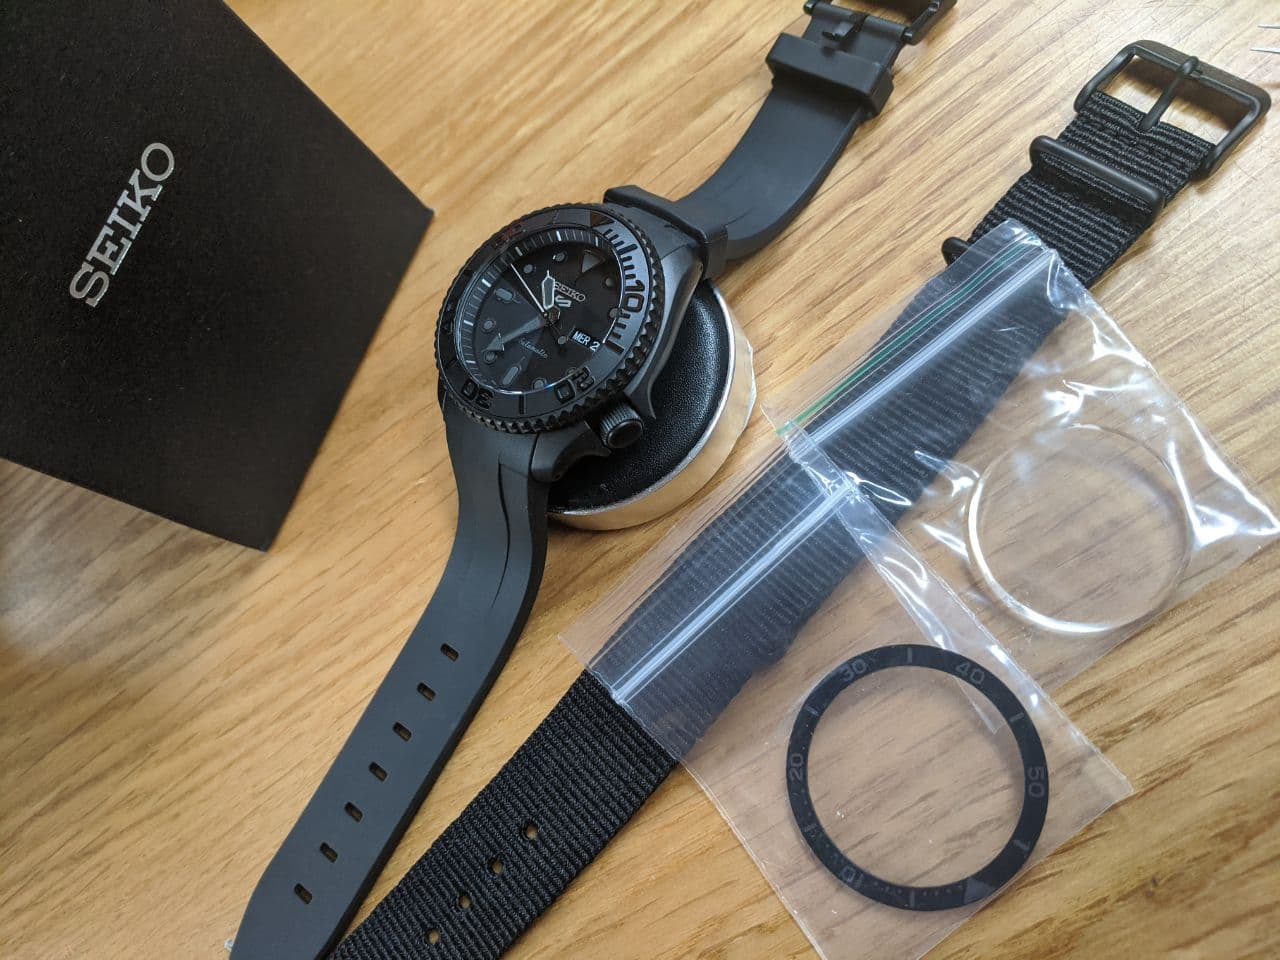 Seiko mods in the UK - SRPD79 Black Stealth Yacht Master mod. This mod includes a double dome sapphire crystal with blue anti reflective coating a Yacht Master bezel insert and a Rubber Oyster Bracelet 2 peice